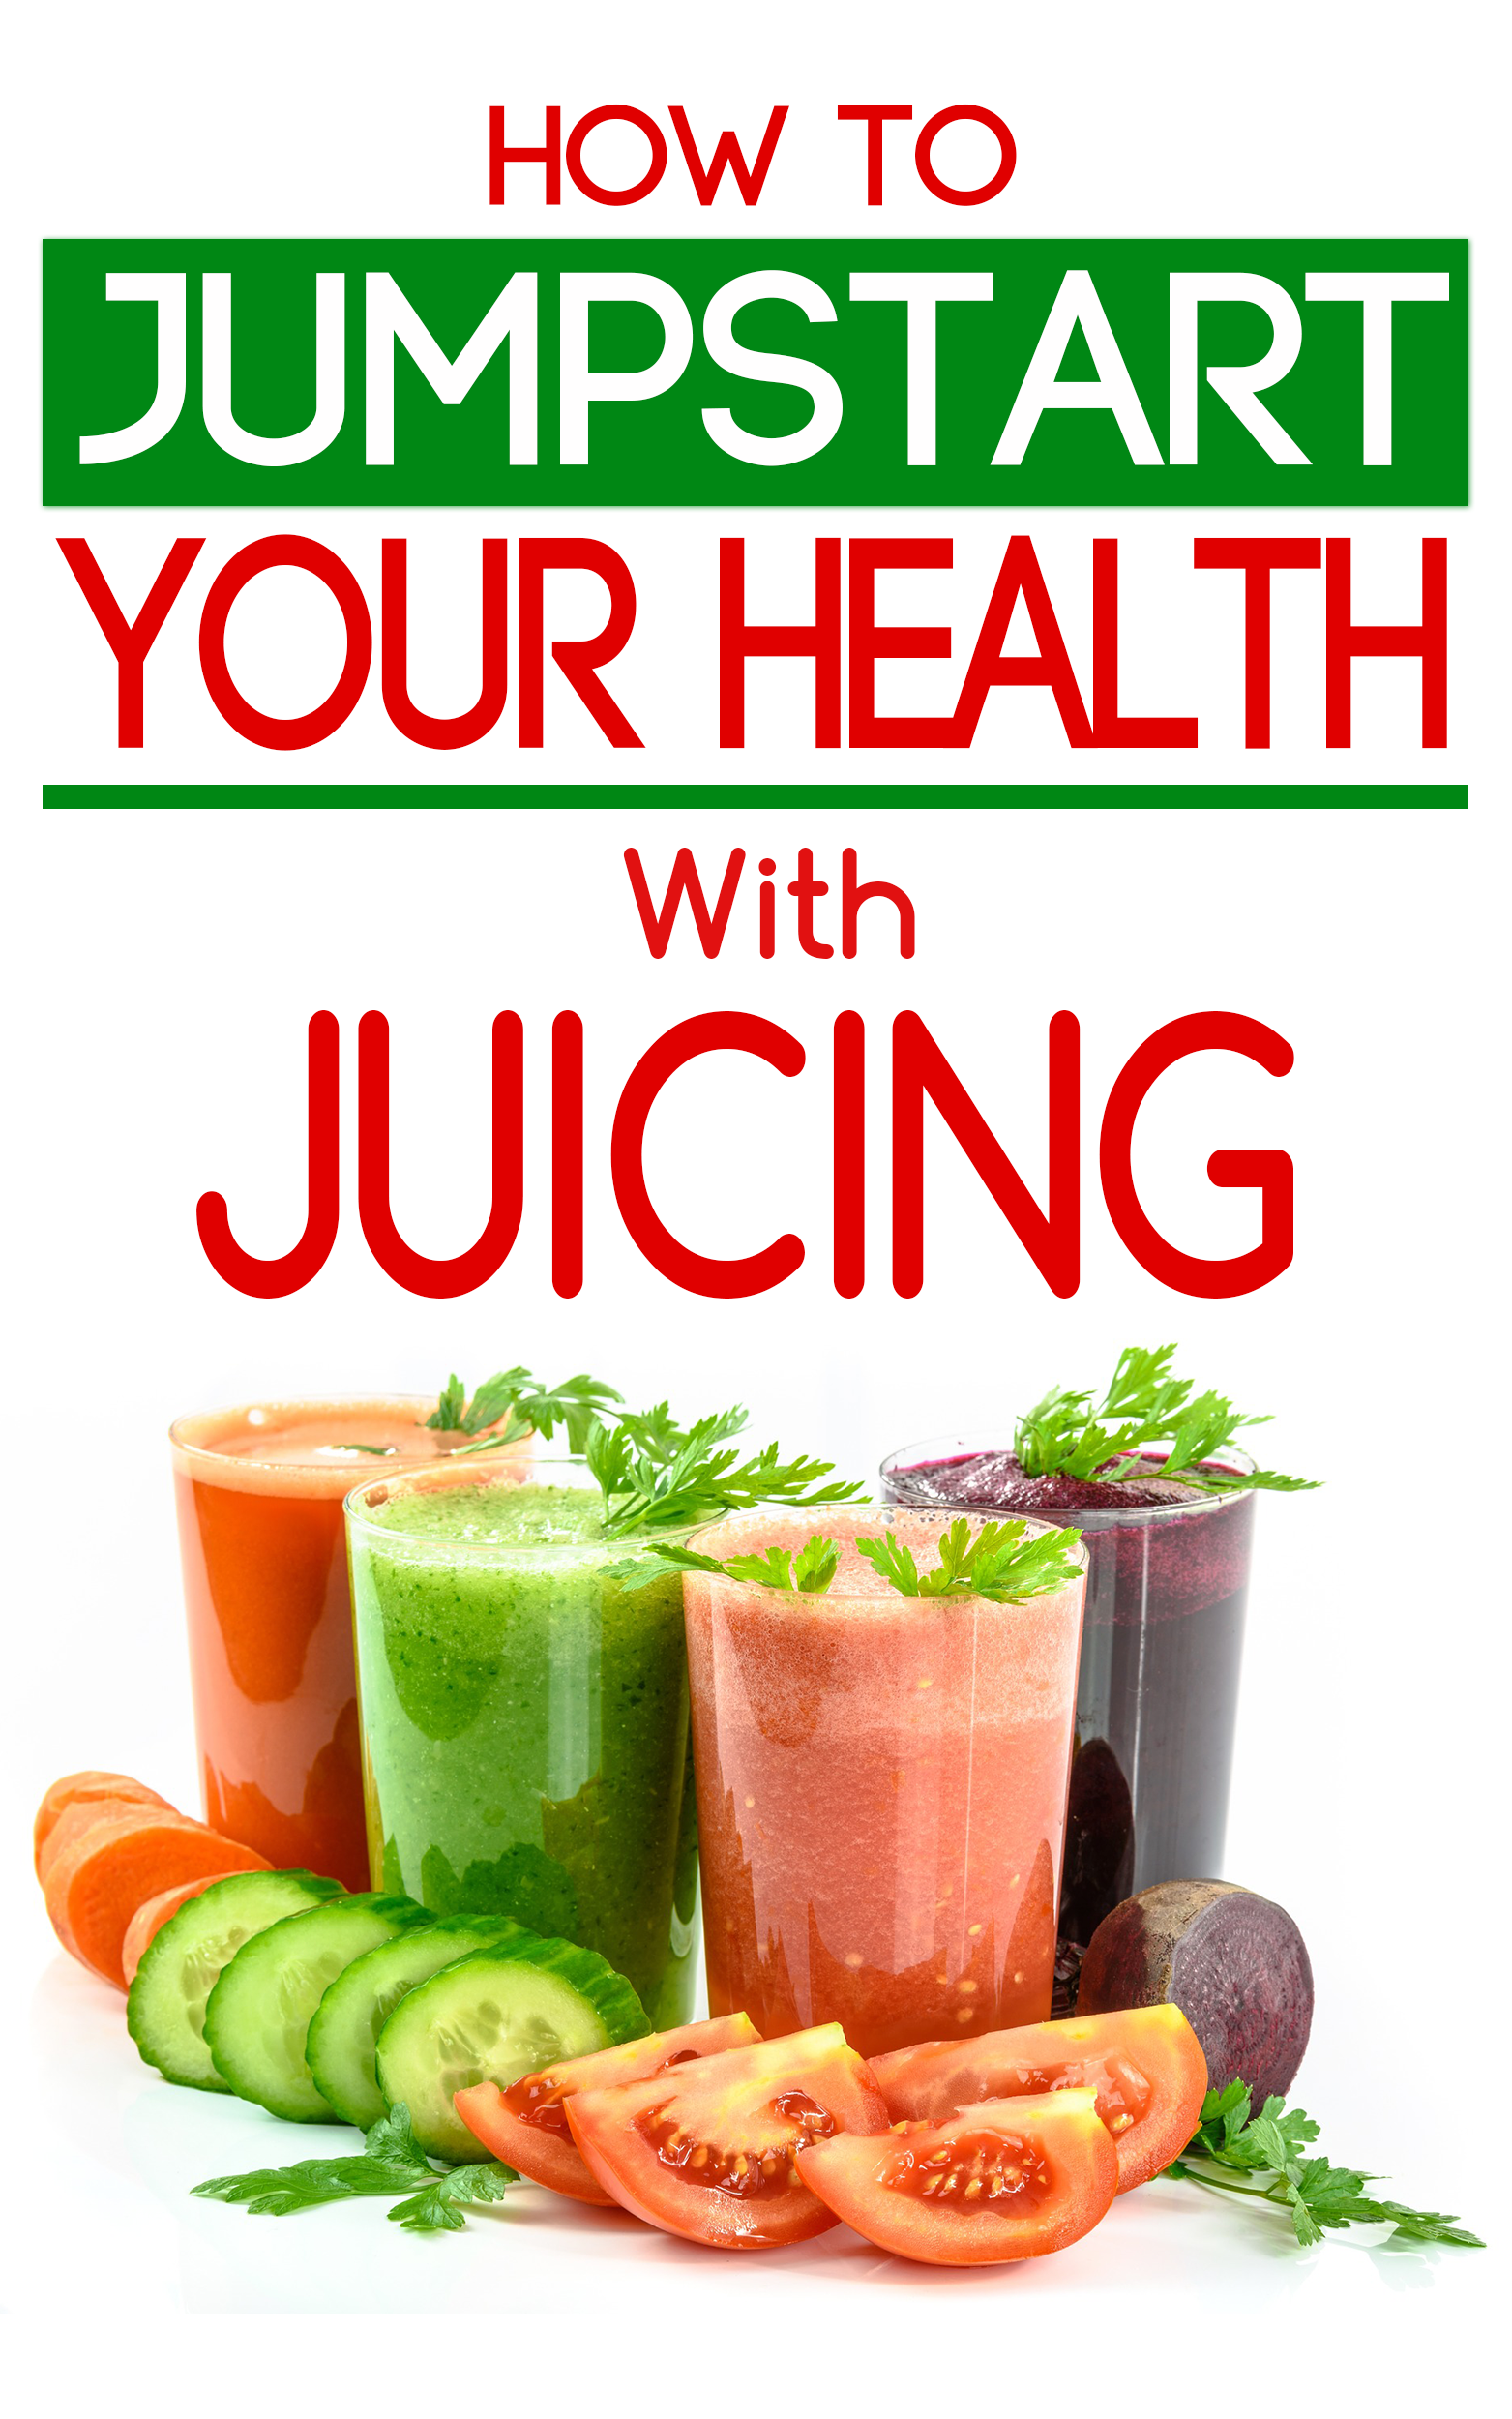 Jumpstart Your Health With Juicing - free ebook